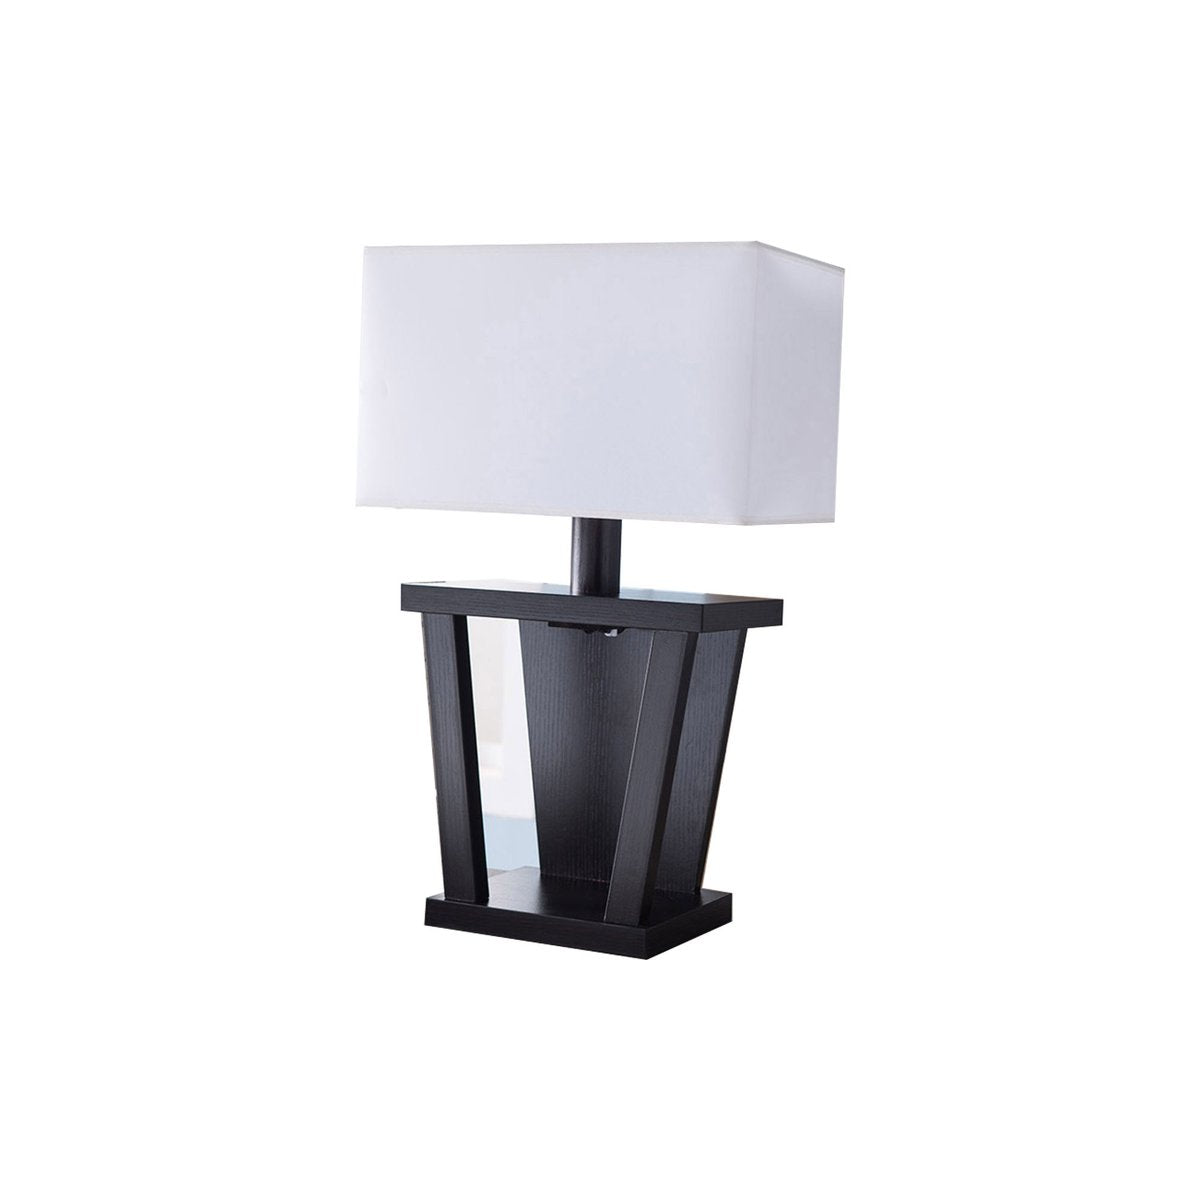 Lamps: Contemporary Style Sturdy Table Lamp